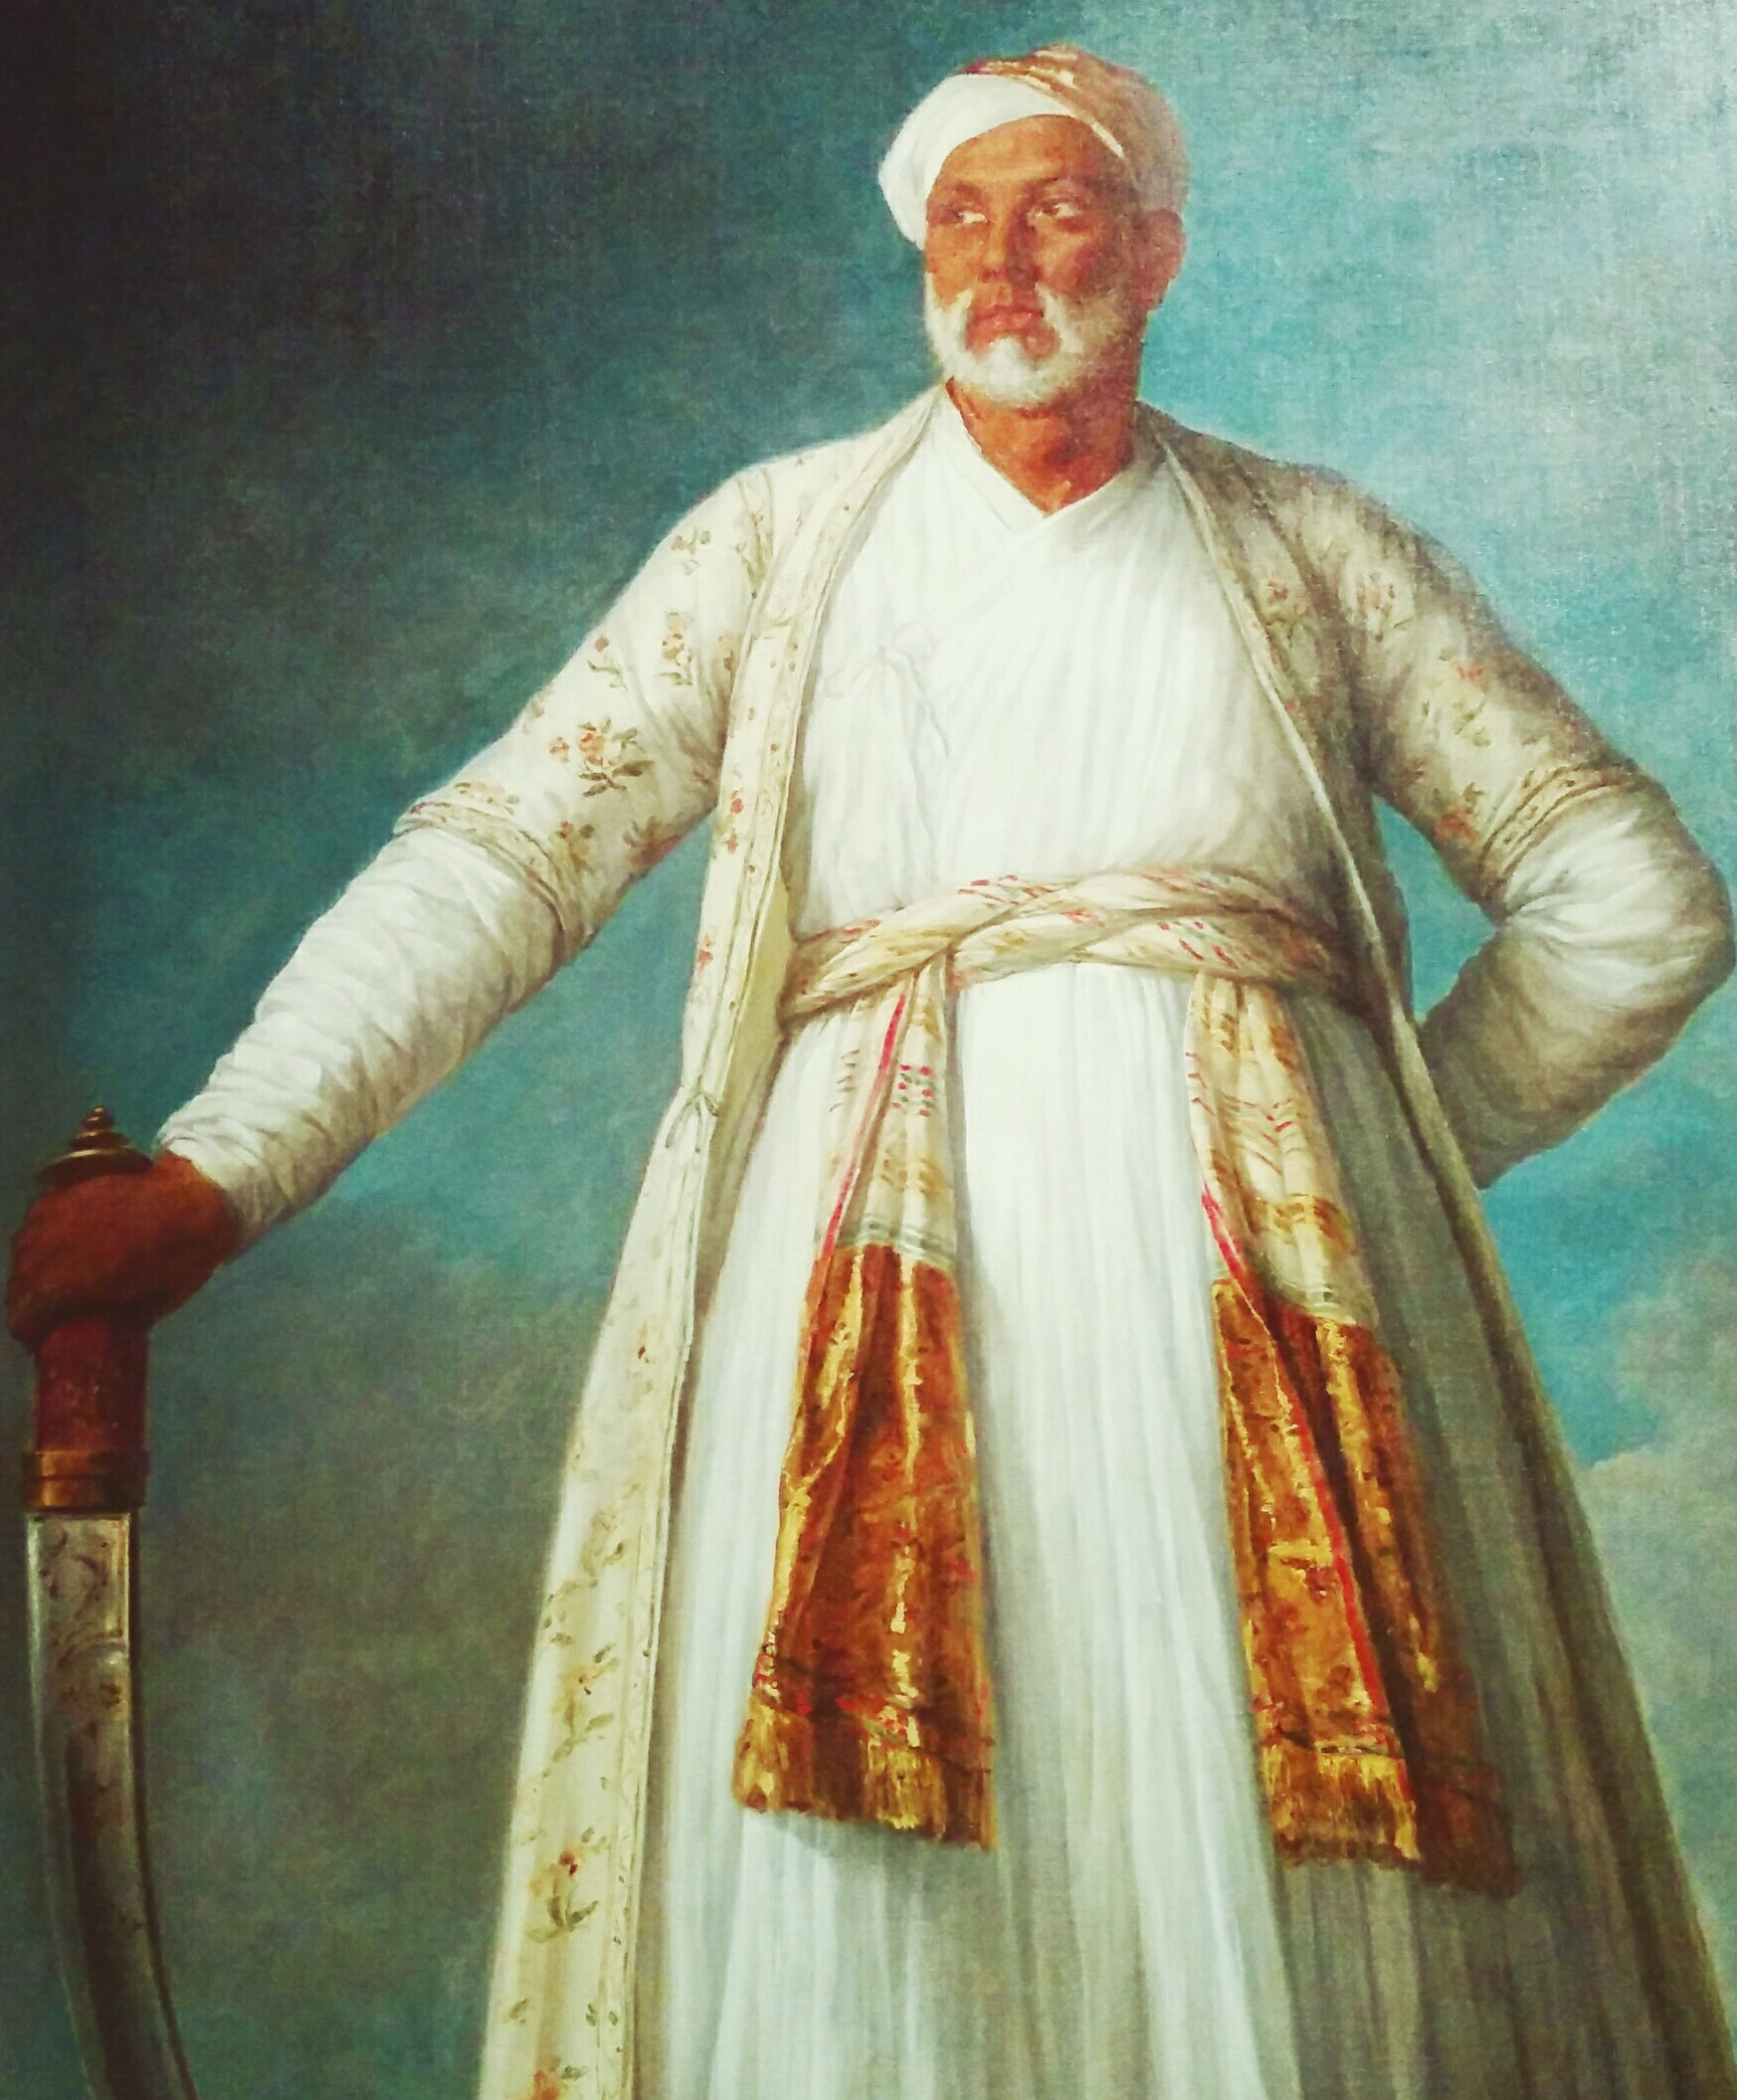 Painting of TIpu's ambassador to France, wearing white robes.